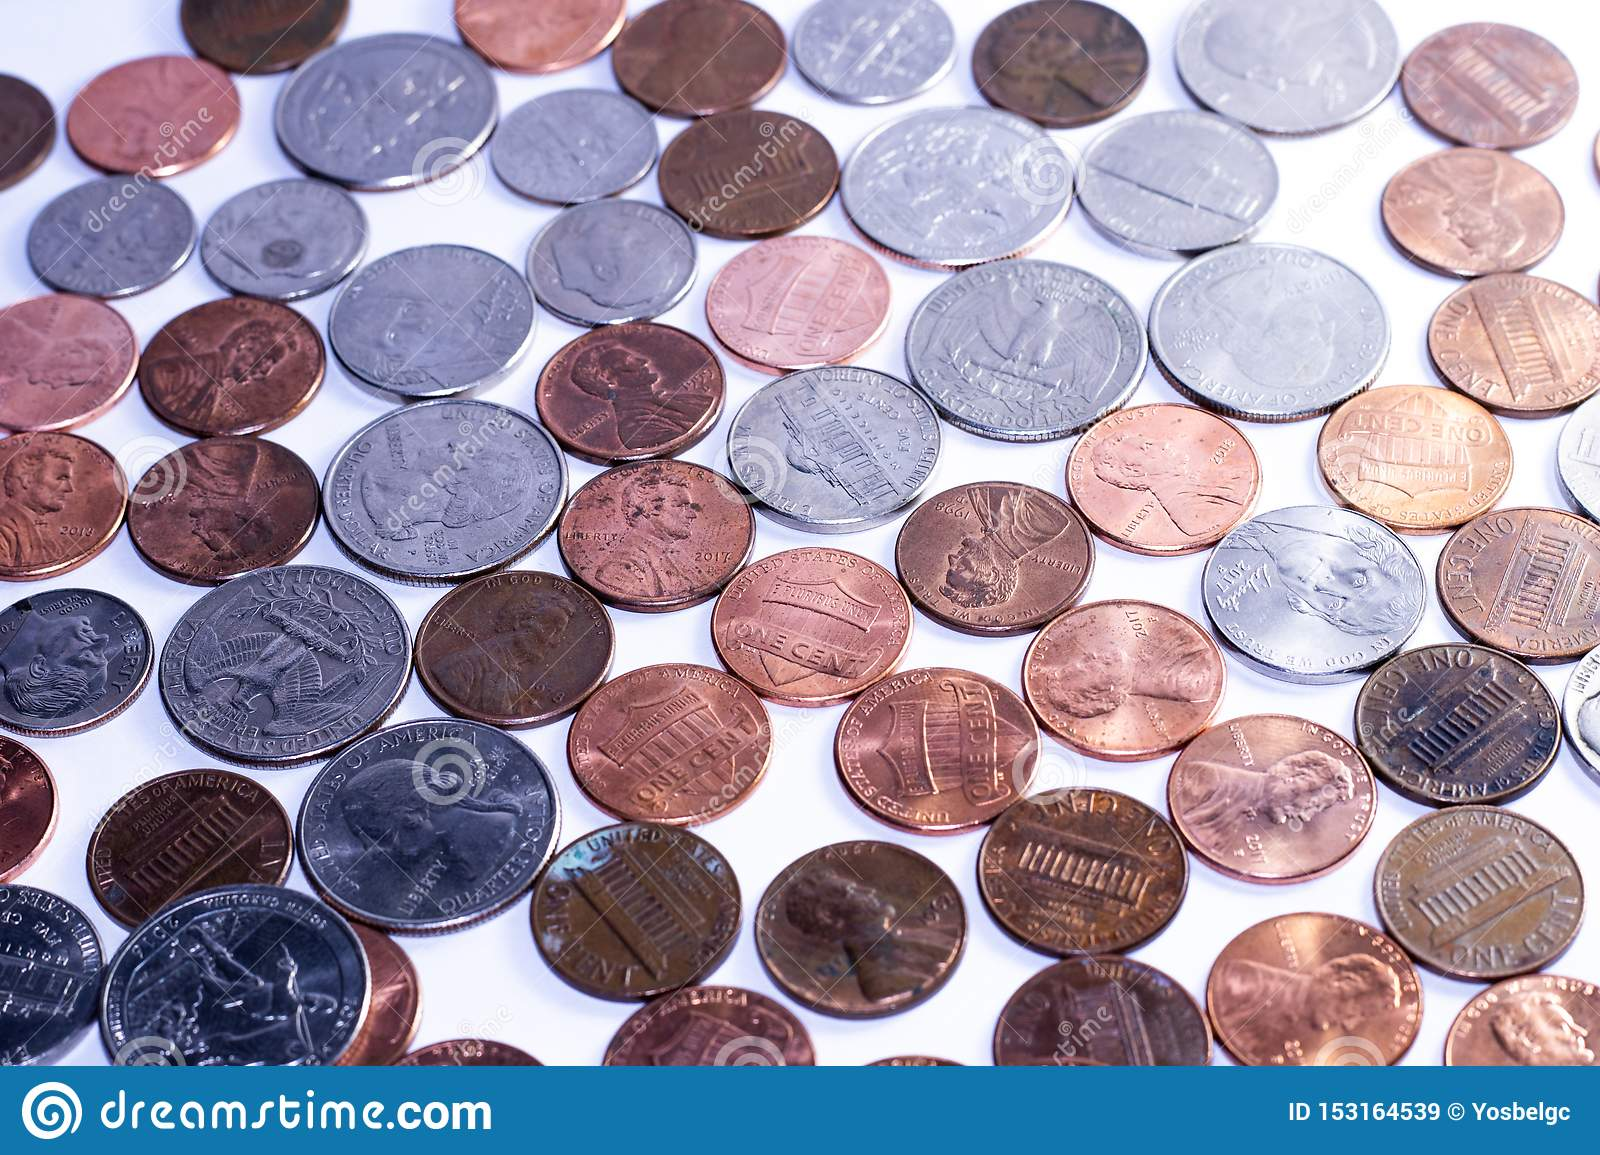 Background of american coins for economy purposes